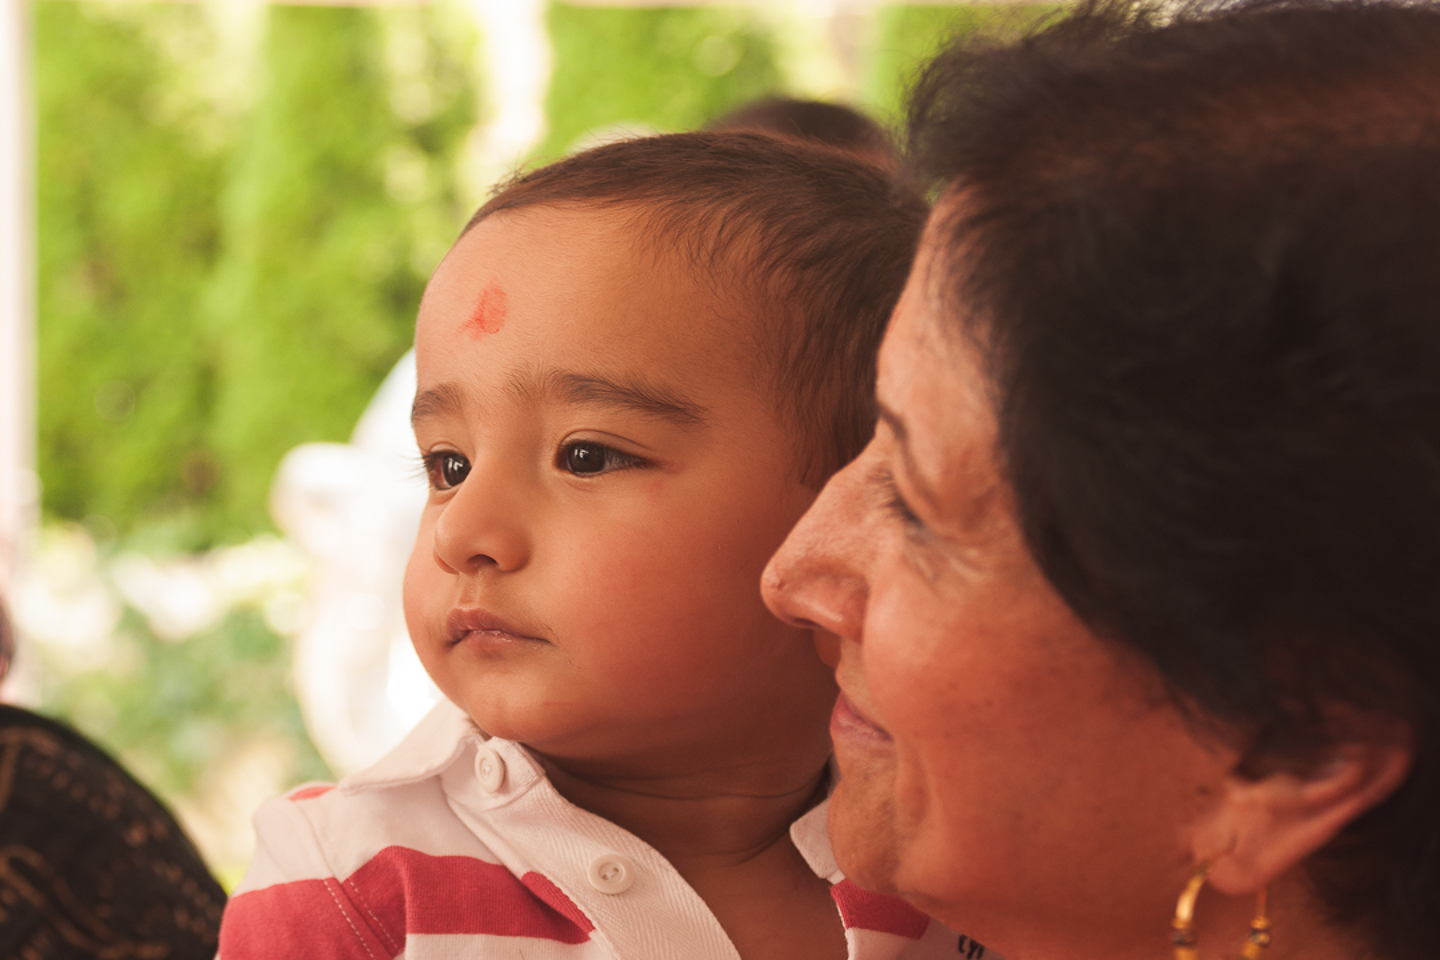 mithun-first-birthday-party-event-photography-long-island-ny-first-birthday-0066.jpg